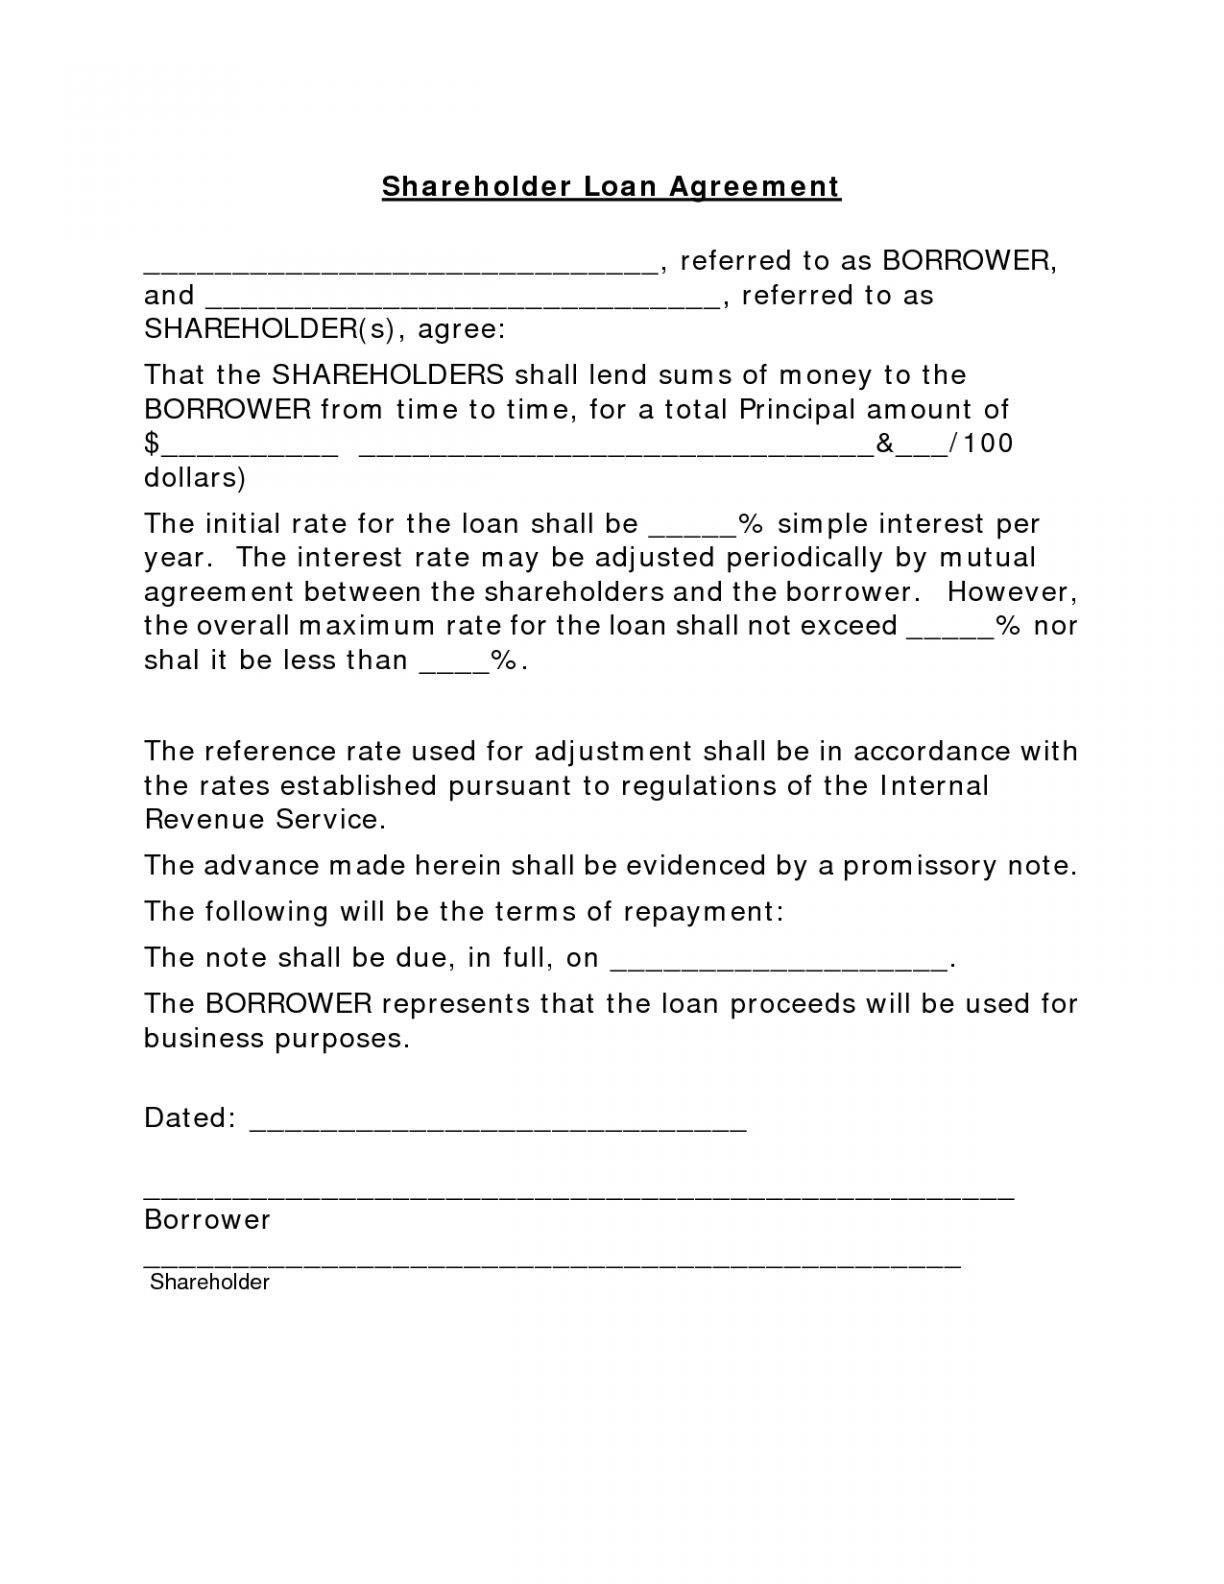 Sample Shareholder Loan Agreement Template